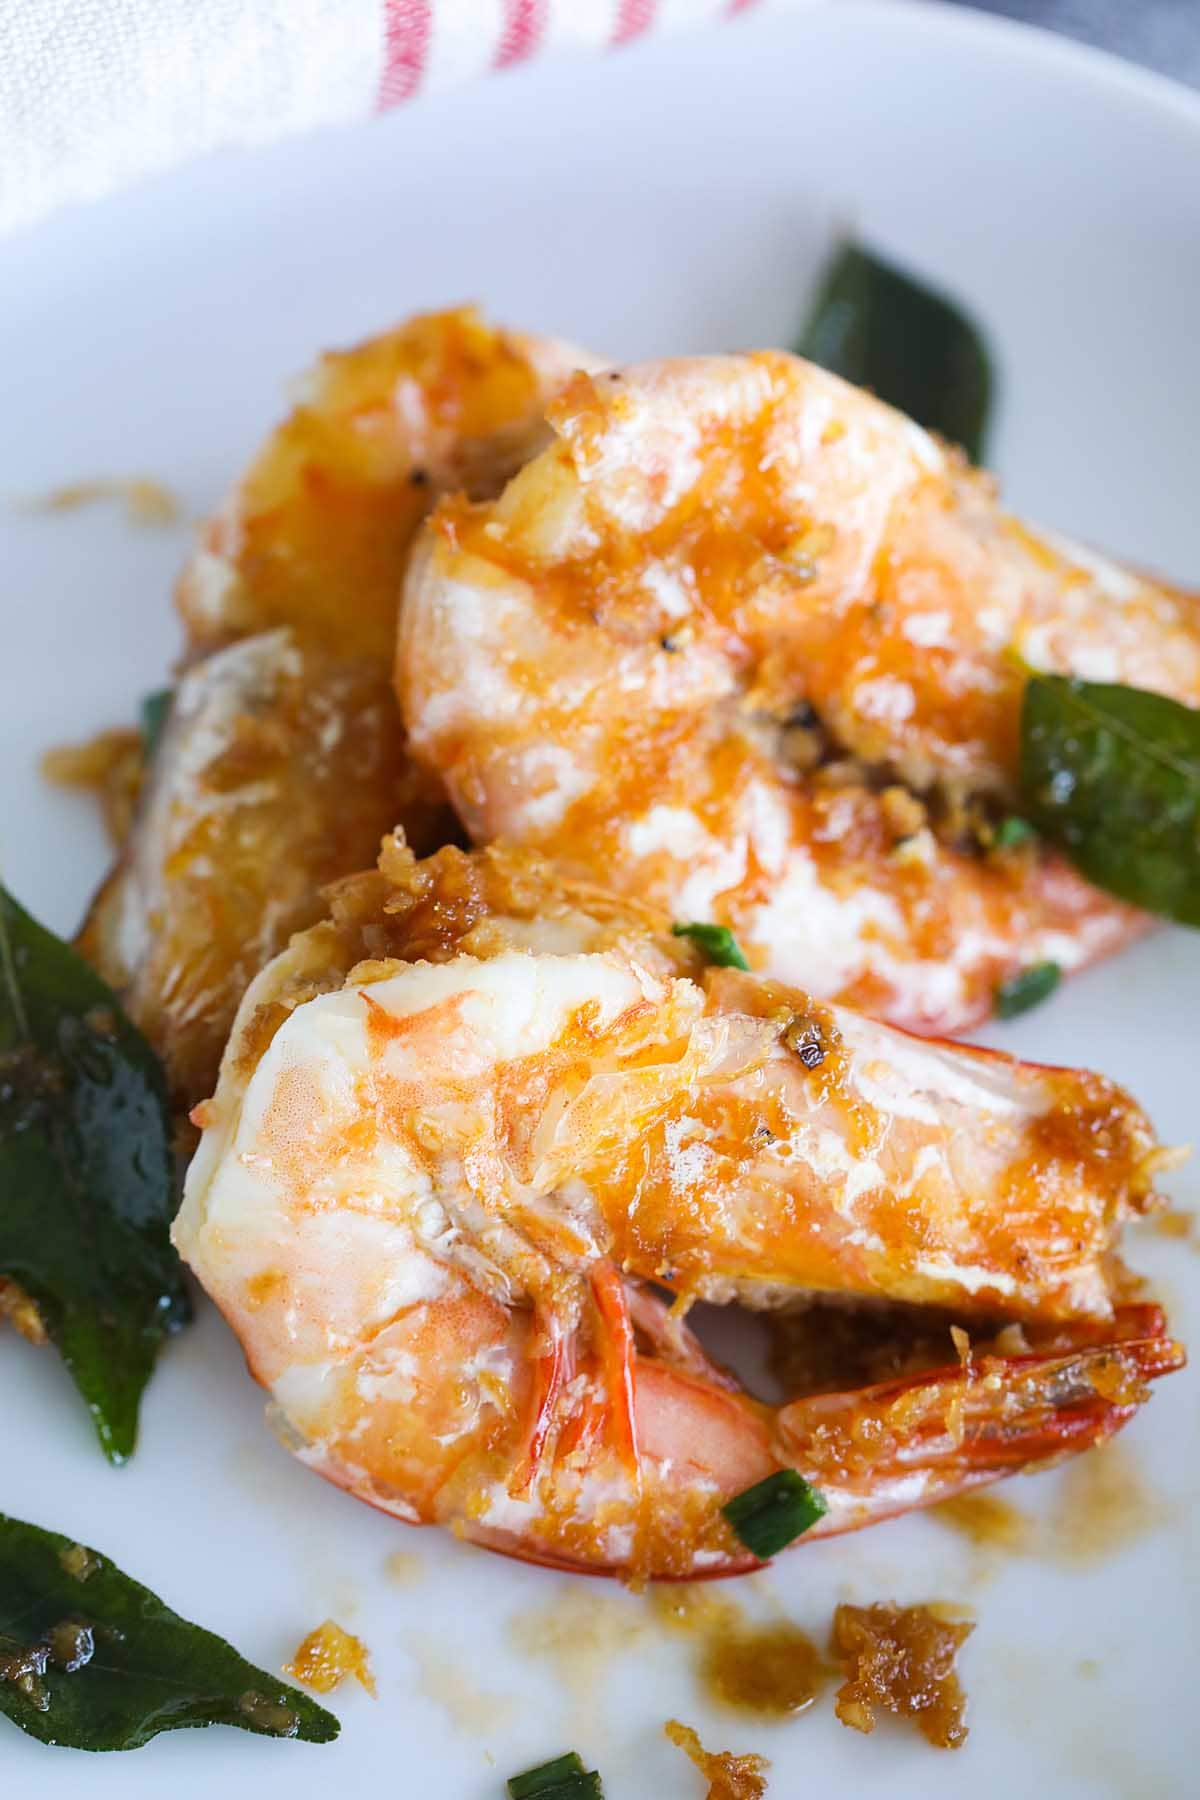 Authentic butter prawn with green curry leaves.